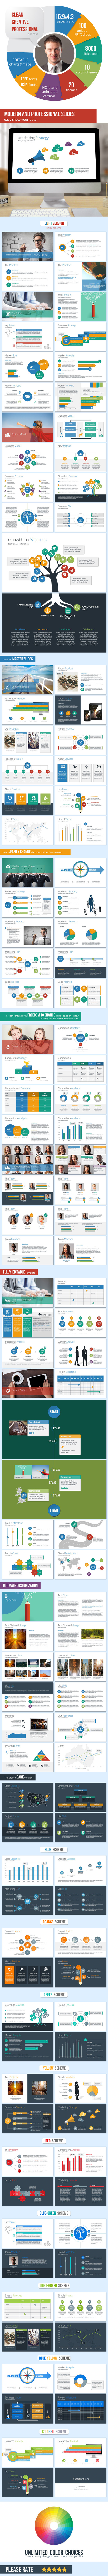 Pitch Deck NY PowerPoint Presentation Template - Pitch Deck PowerPoint Templates